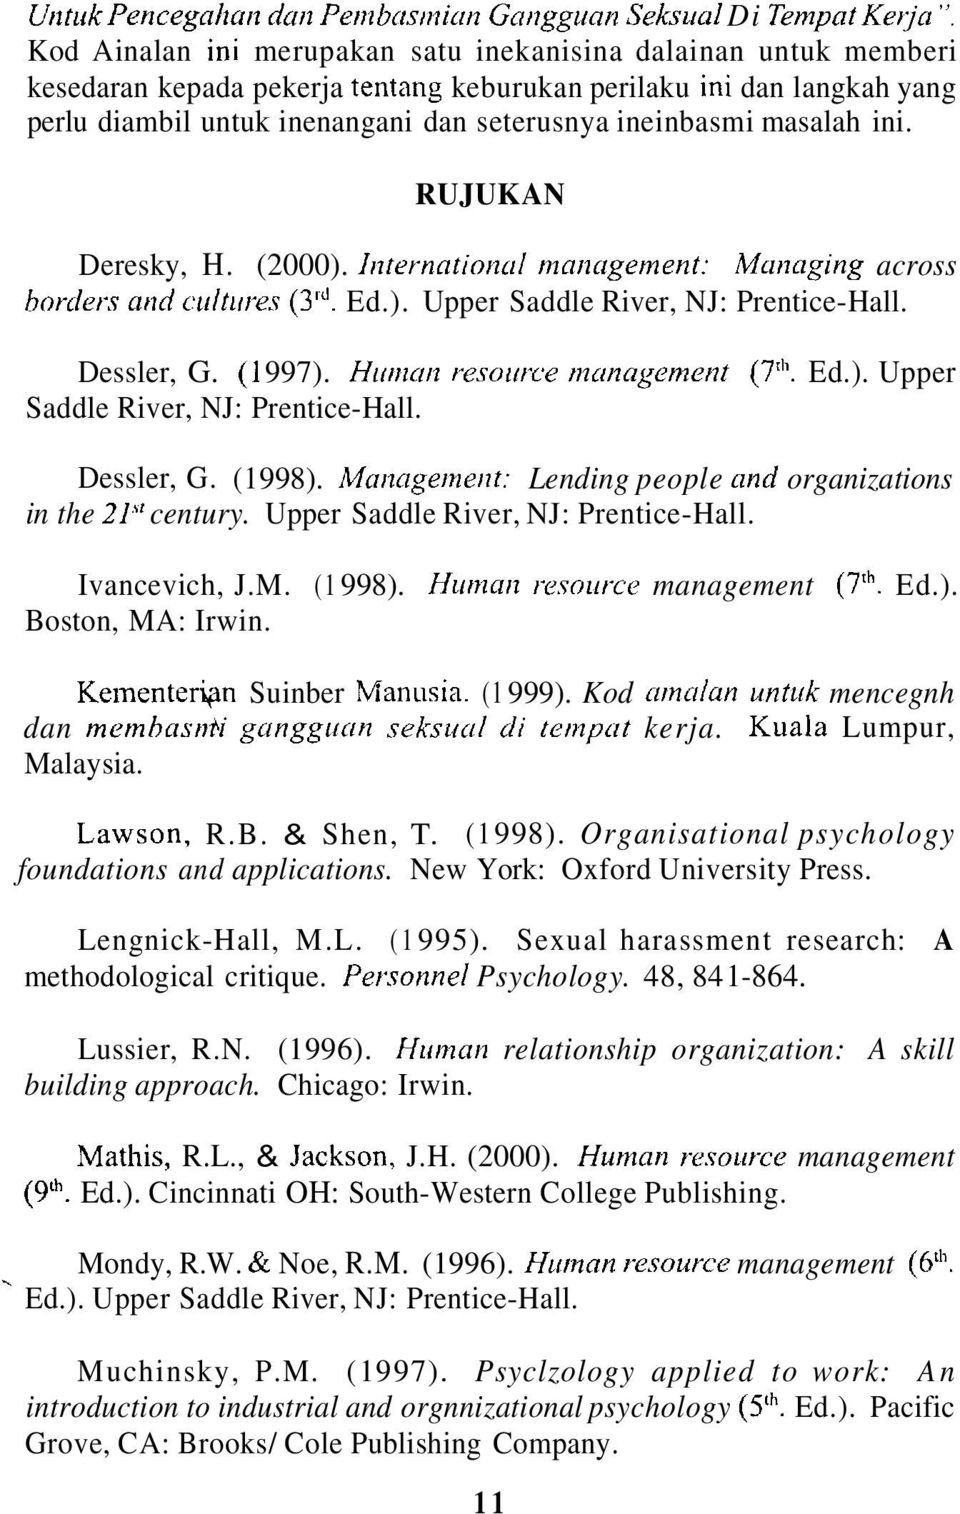 masalah ini. RUJUKAN Deresky, H. (2000). Internatioiicil ninntigement: Managing across borders and cultrires (3. Ed.). Upper Saddle River, NJ: Prentice-Hall. Dessler, G. (1 997).